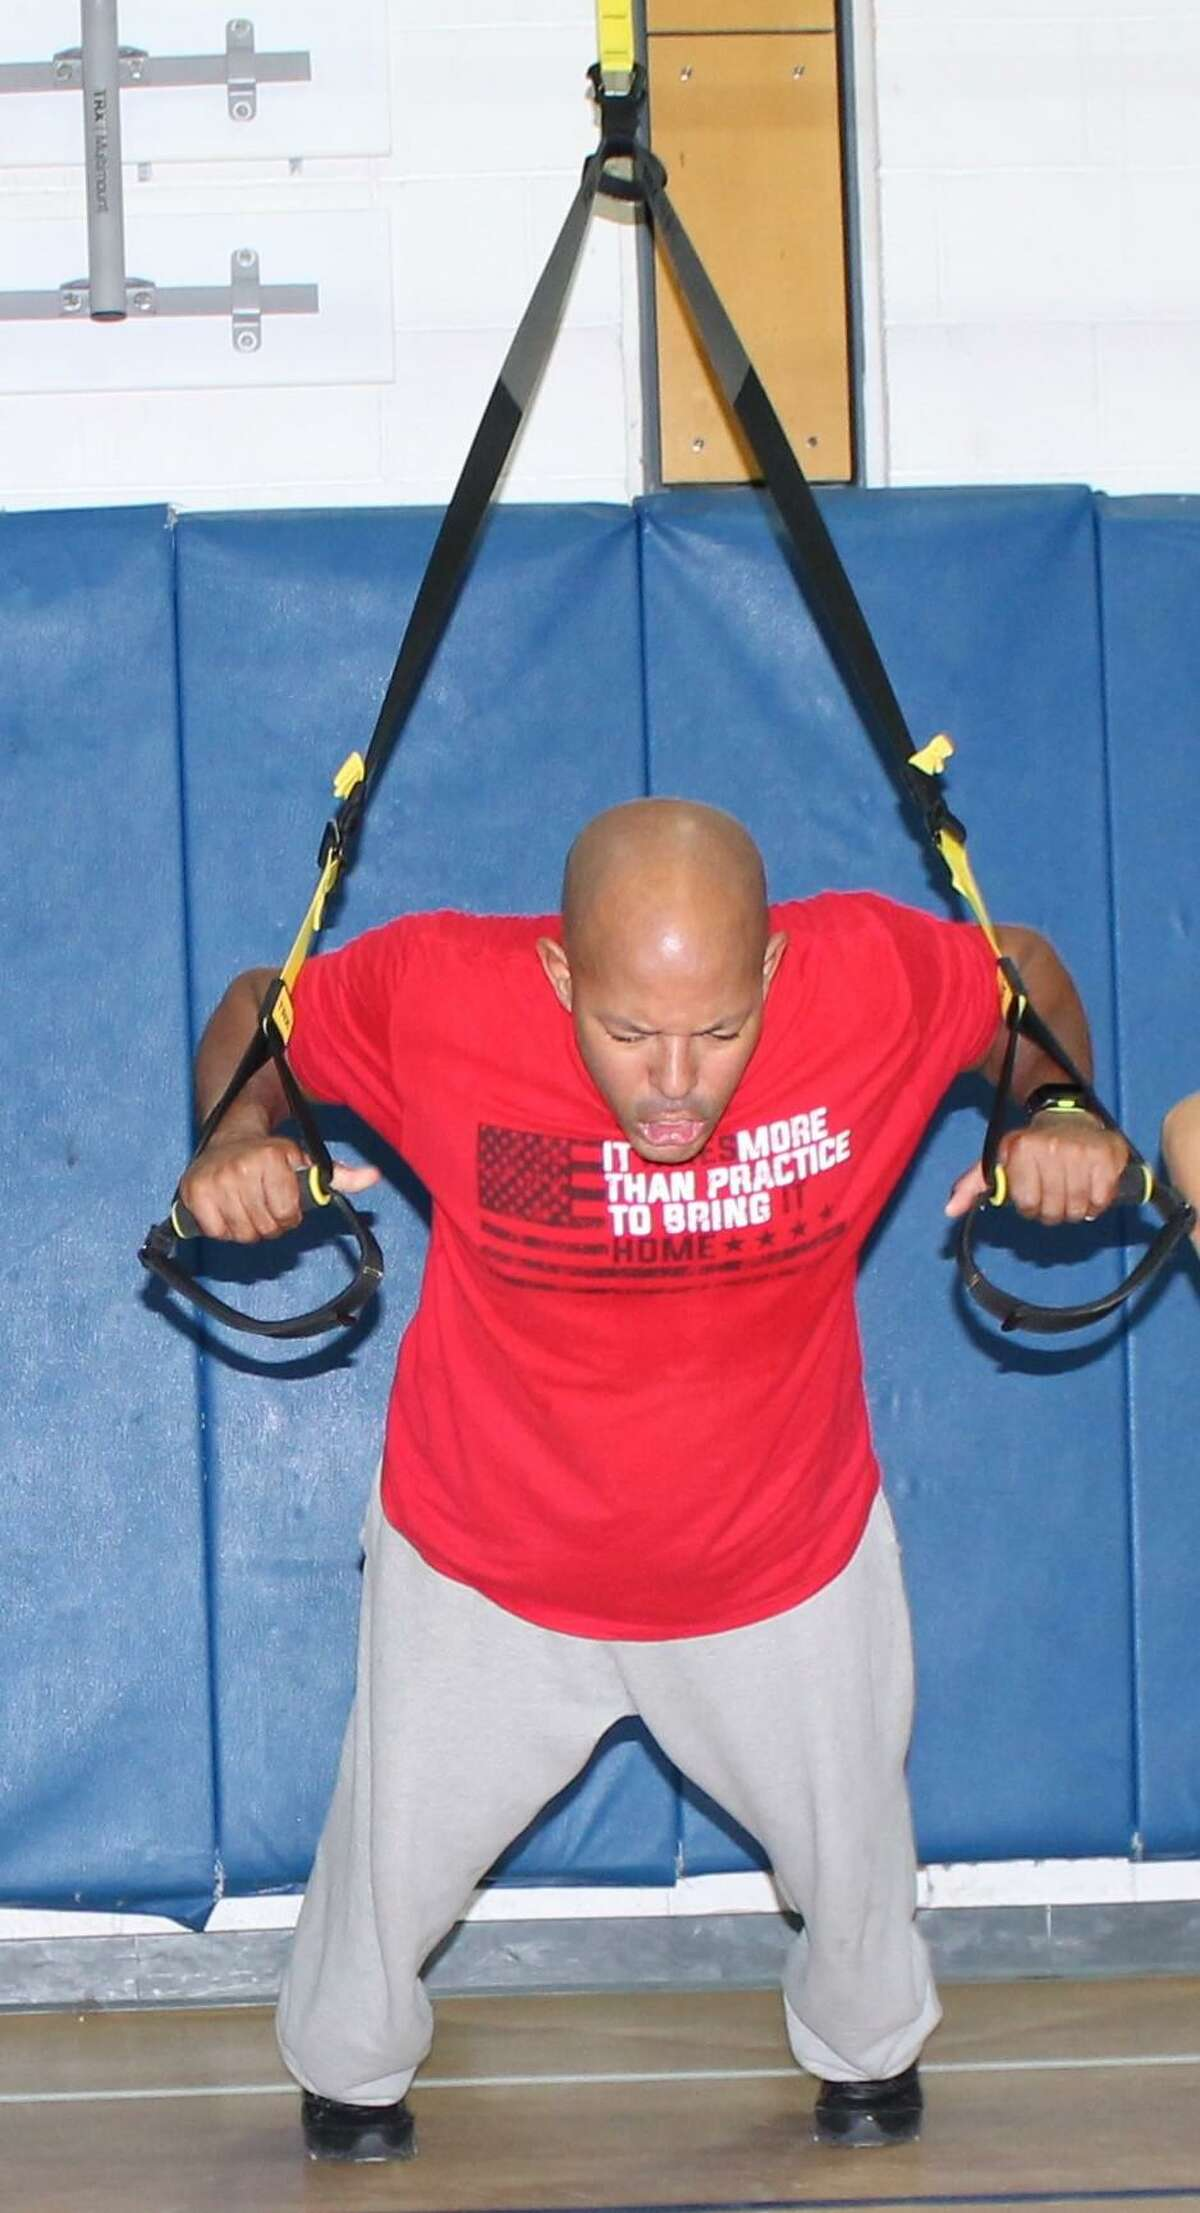 TRX fitness classes are offered at the Recreation Center.